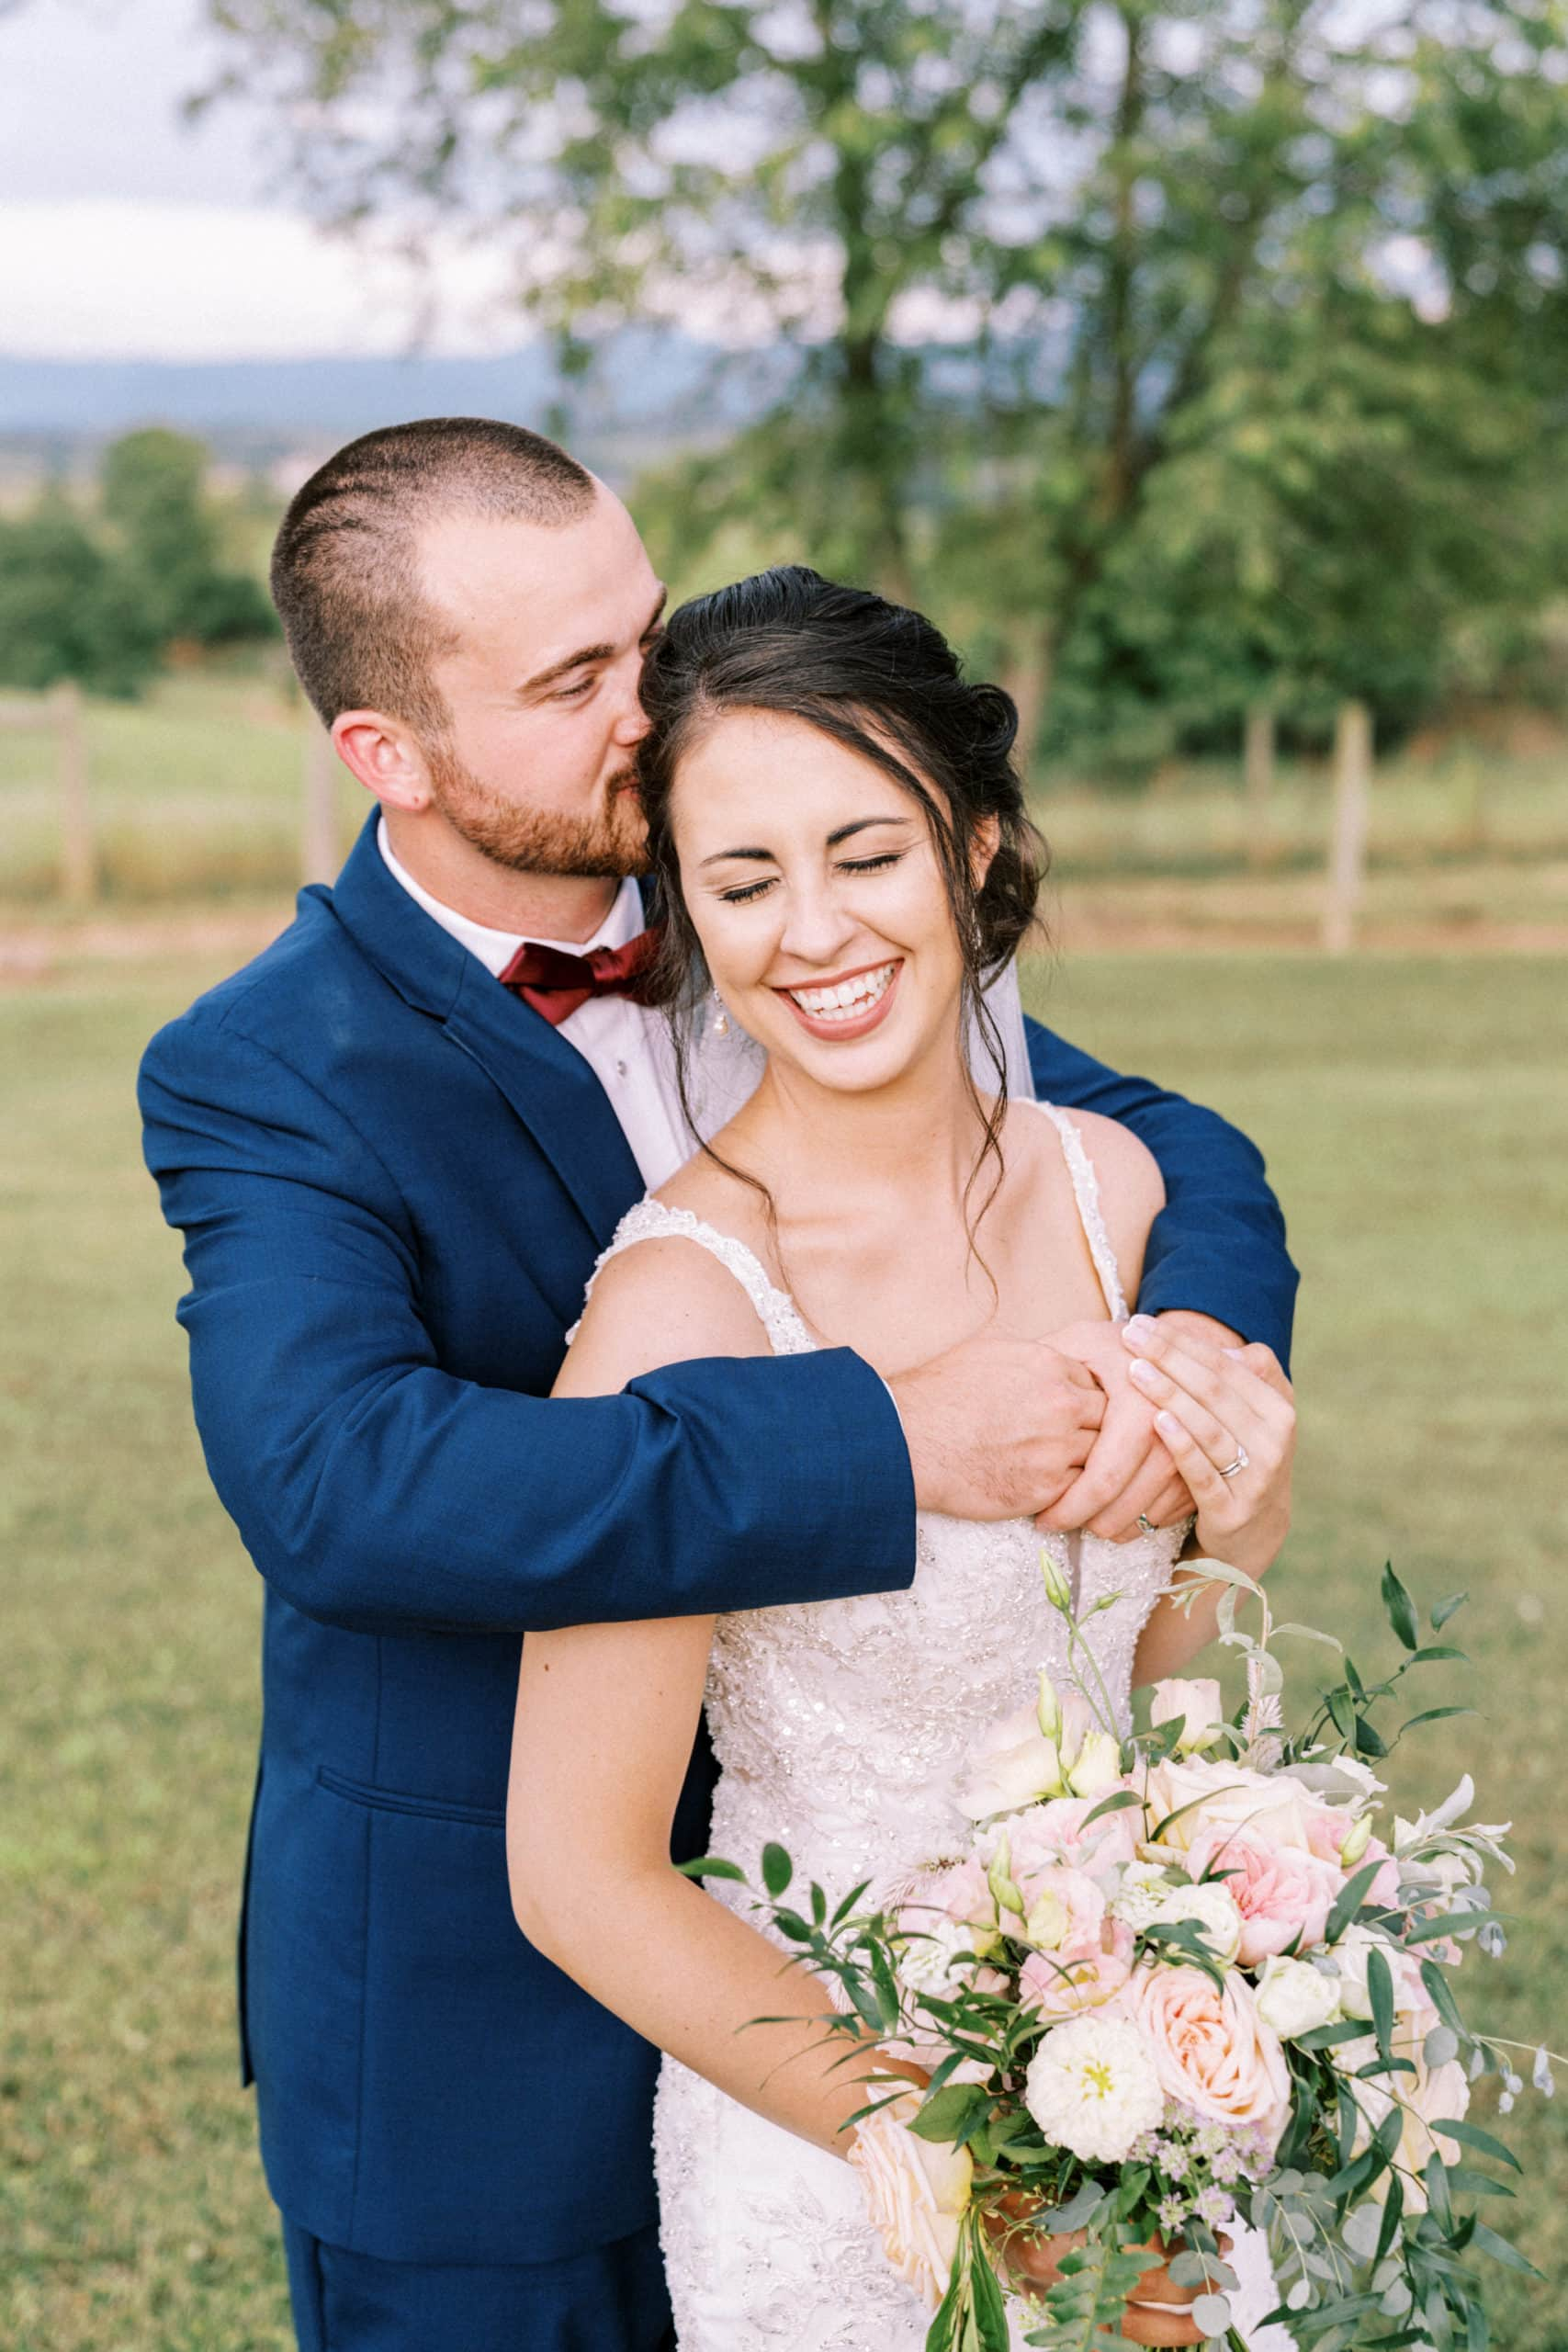 groom hugs wife from behind while smiling